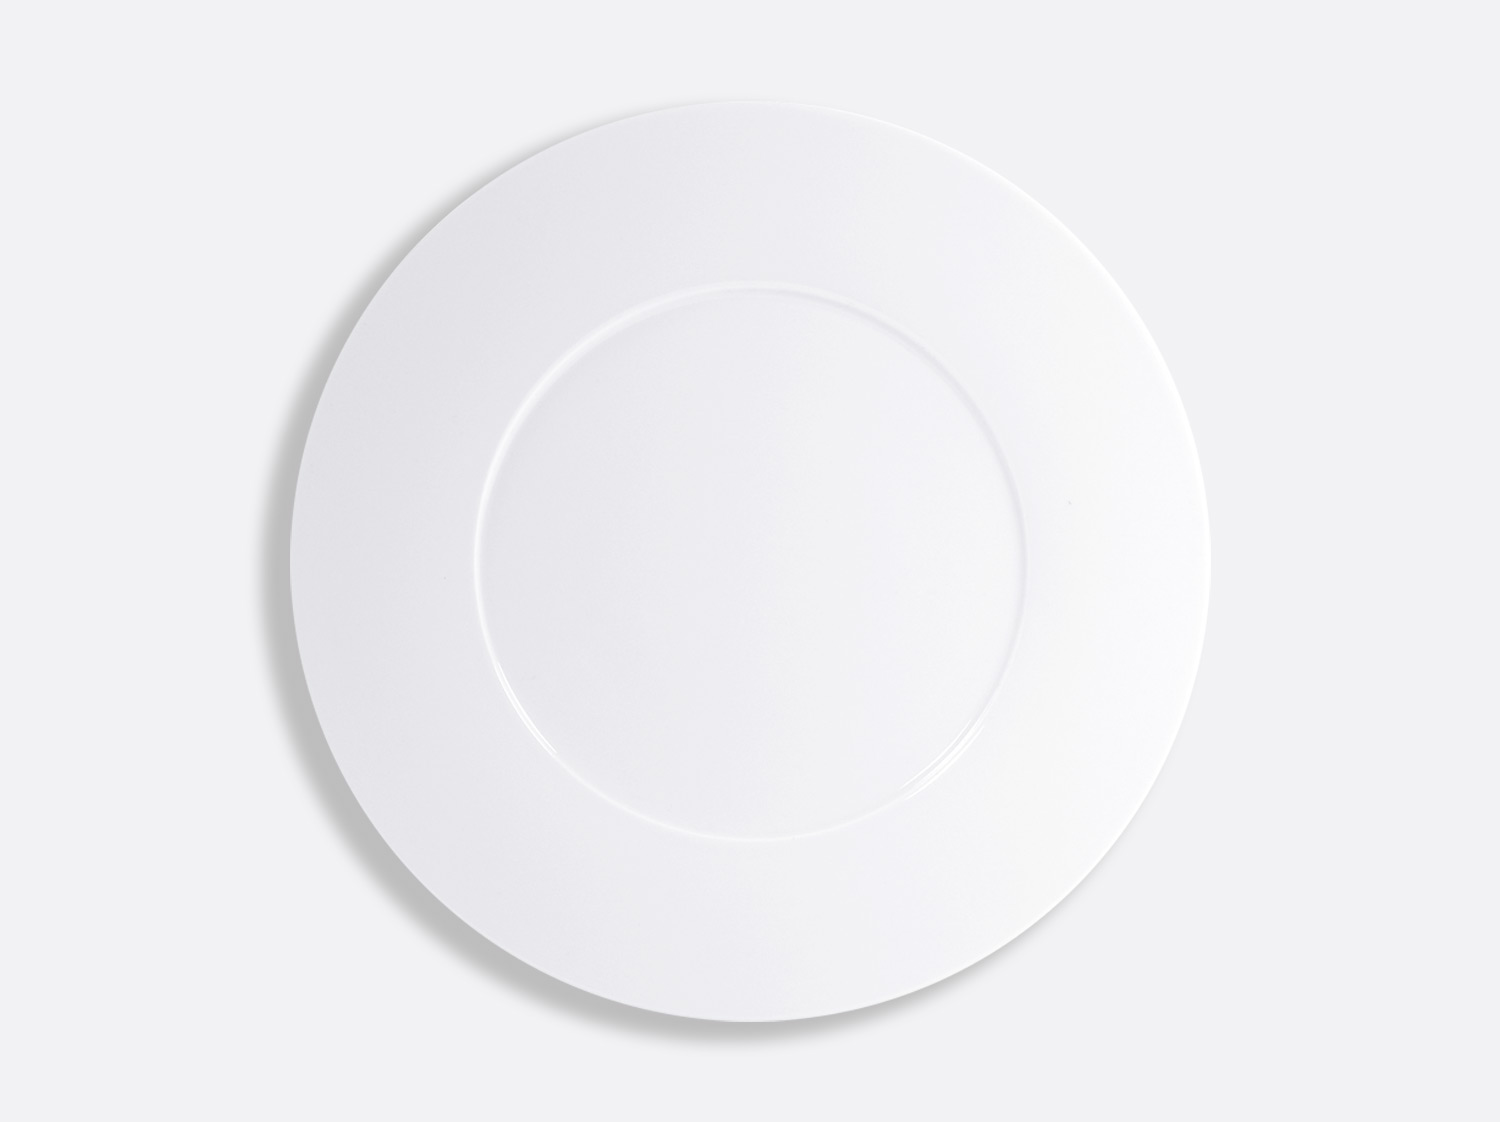 Assiette plate 29,5 cm en porcelaine de la collection ASTRE BLANC Bernardaud